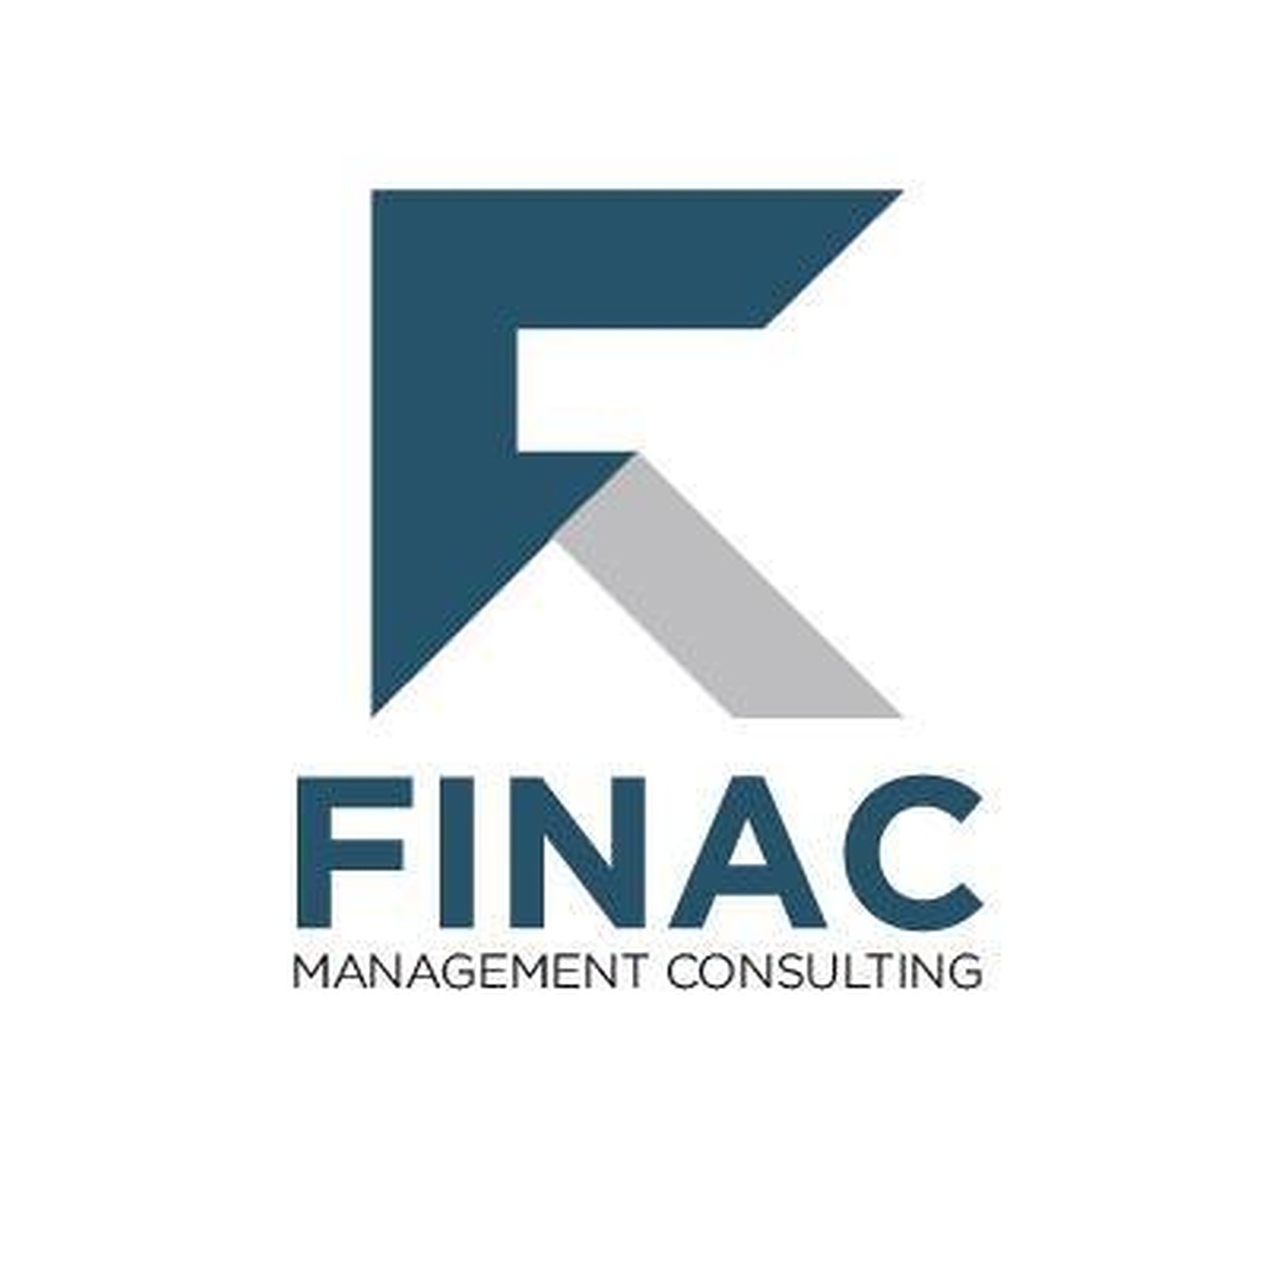 FINAC MANAGEMENT CONSULTING, TAX CONSULTANT,  service in Kozhikode Town, Kozhikode